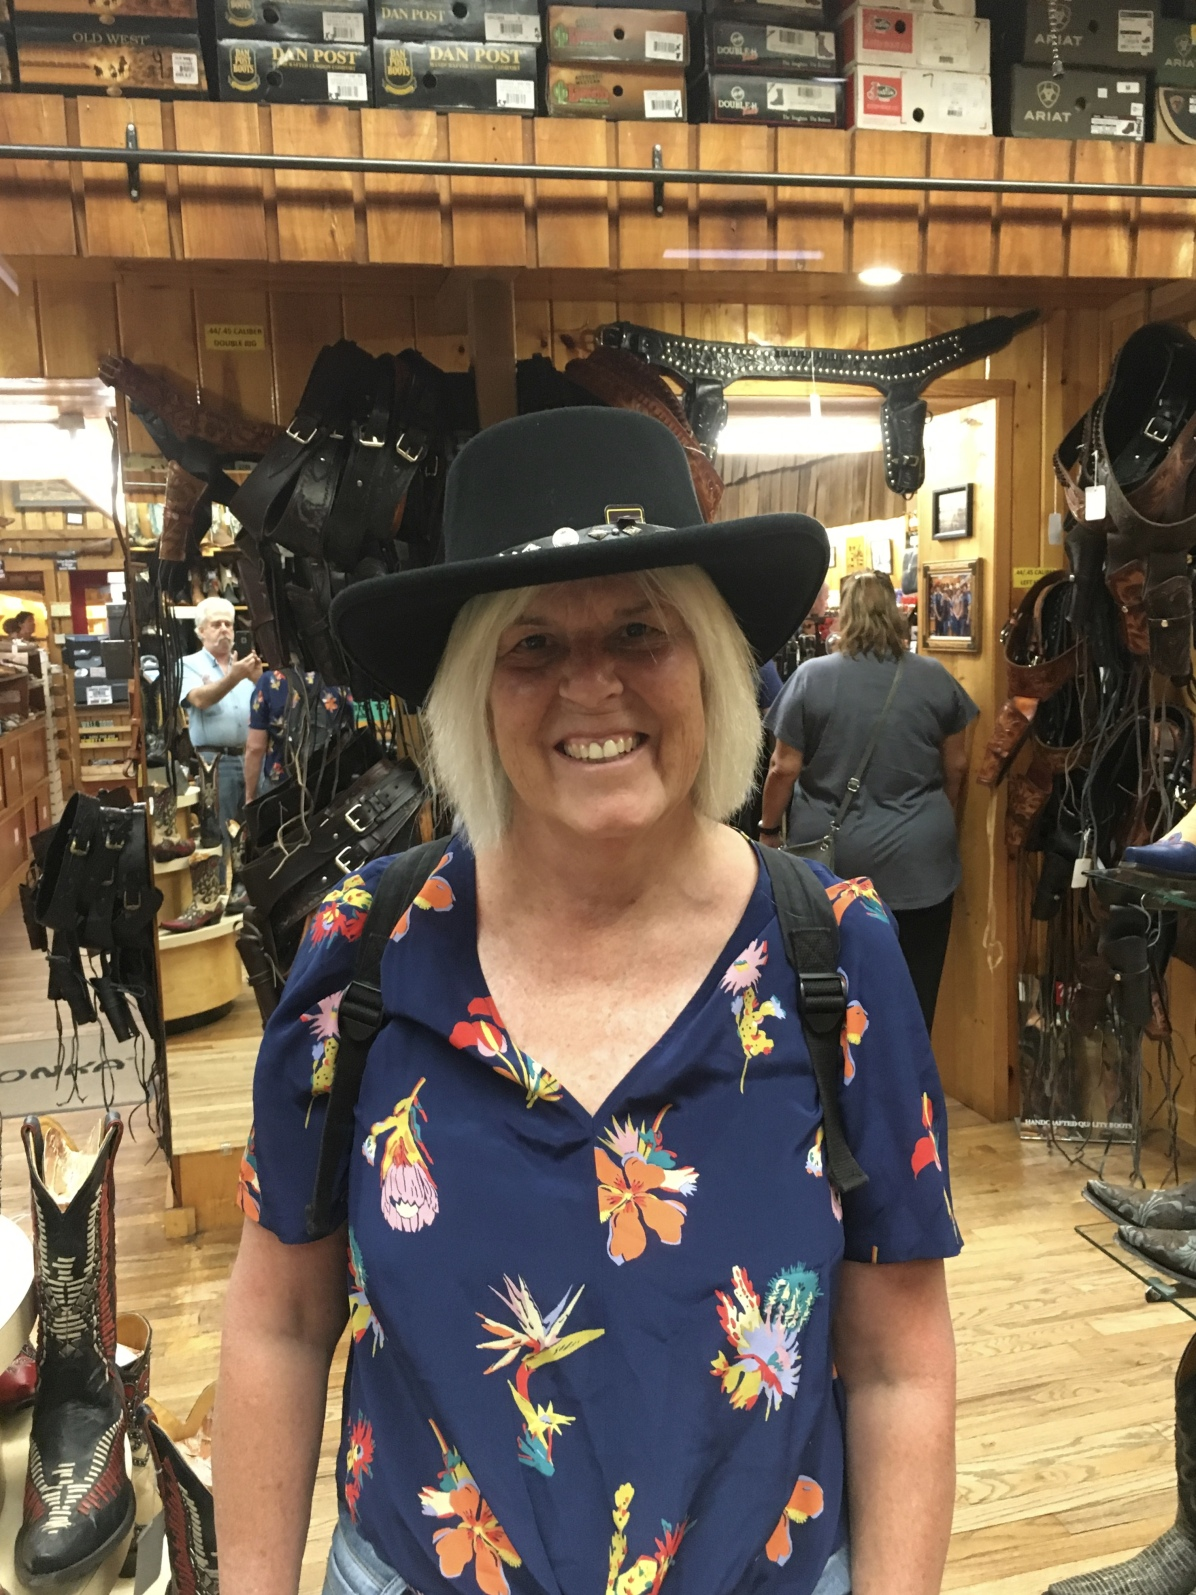 I buy a hat at Wall Drug